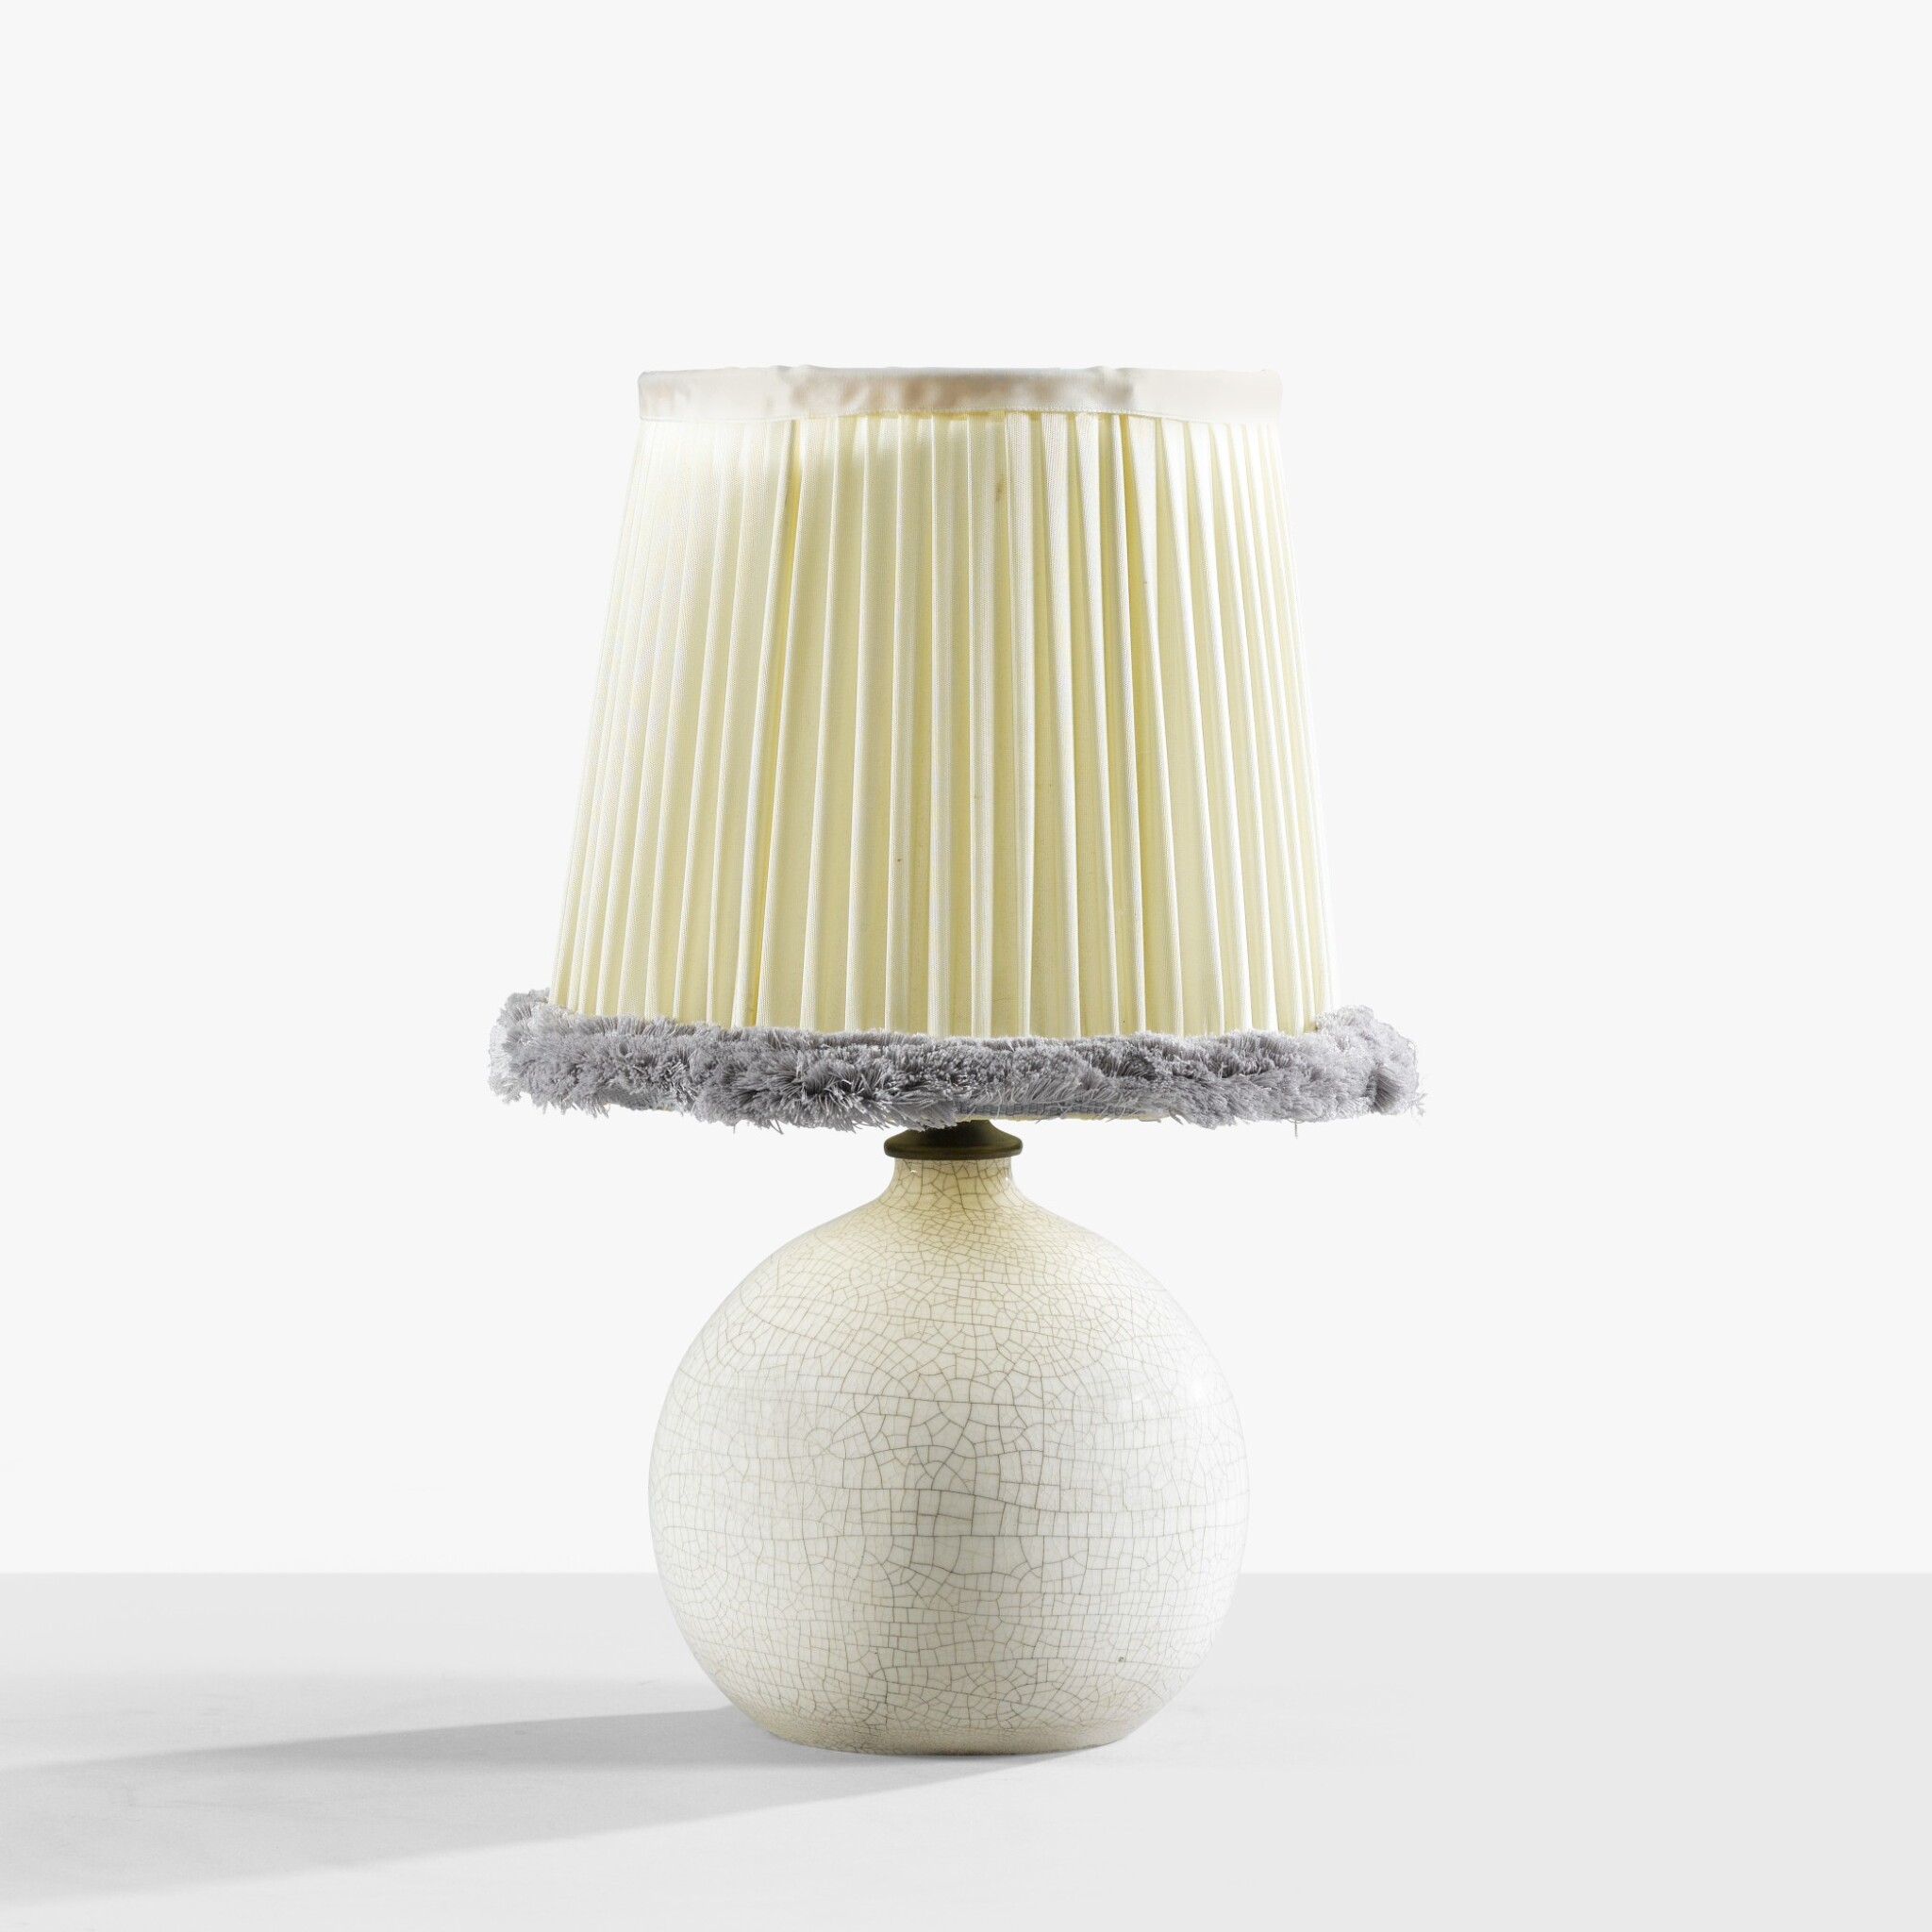 View 1 of Lot 232. JEAN BESNARD | TABLE LAMP, CIRCA 1925 [LAMPE, VERS 1925].